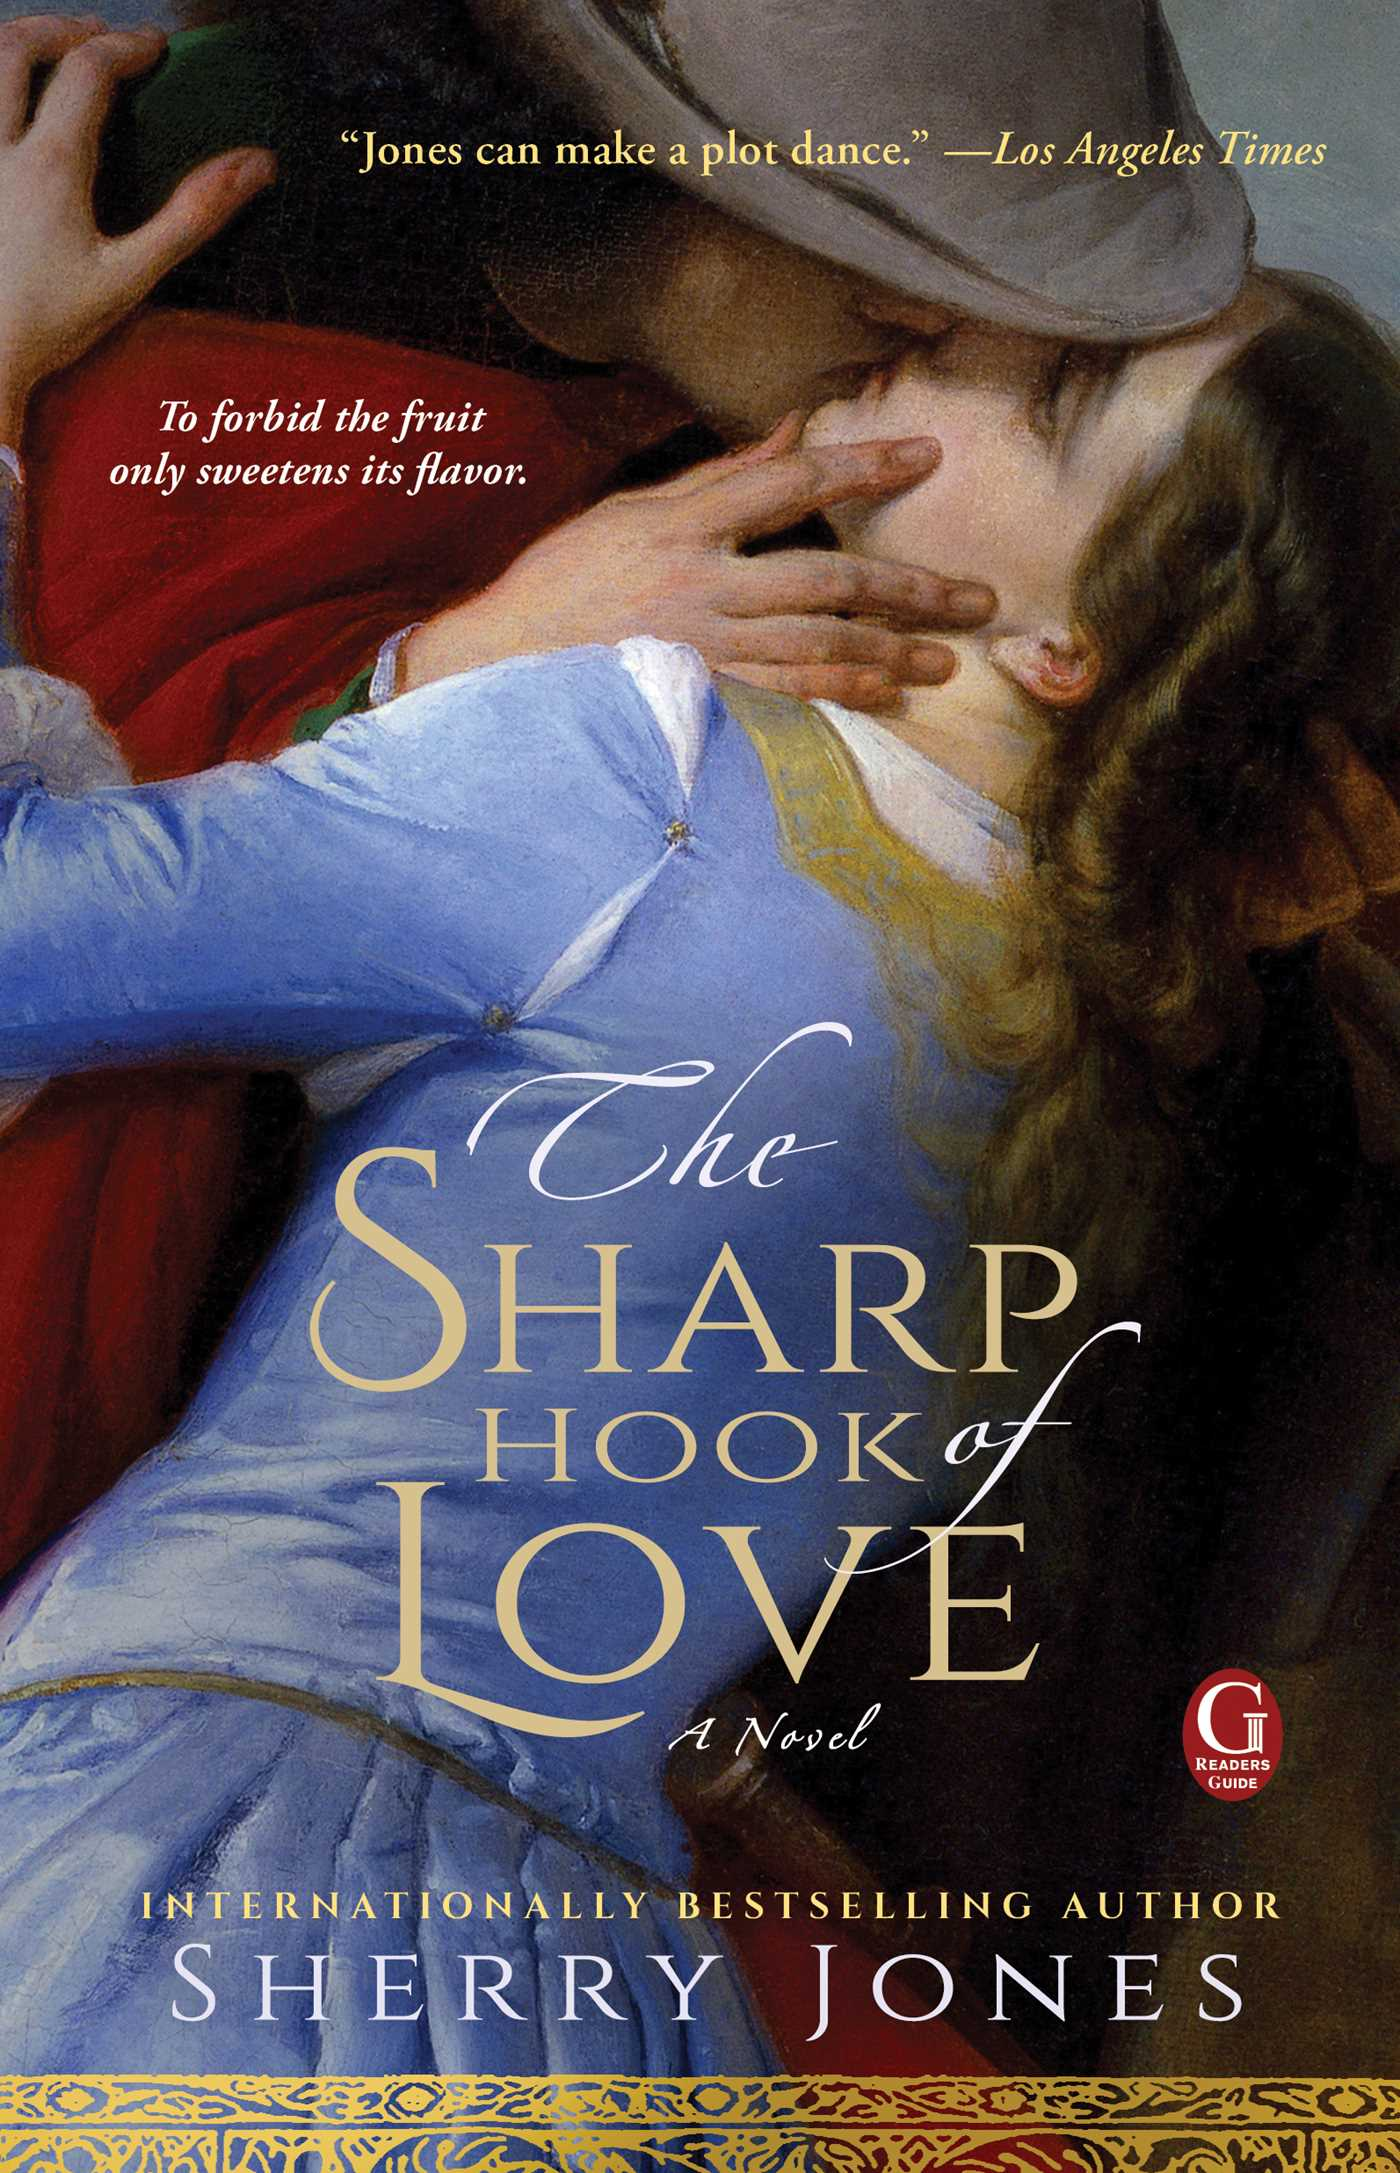 Sharp hook of love 9781451684797 hr